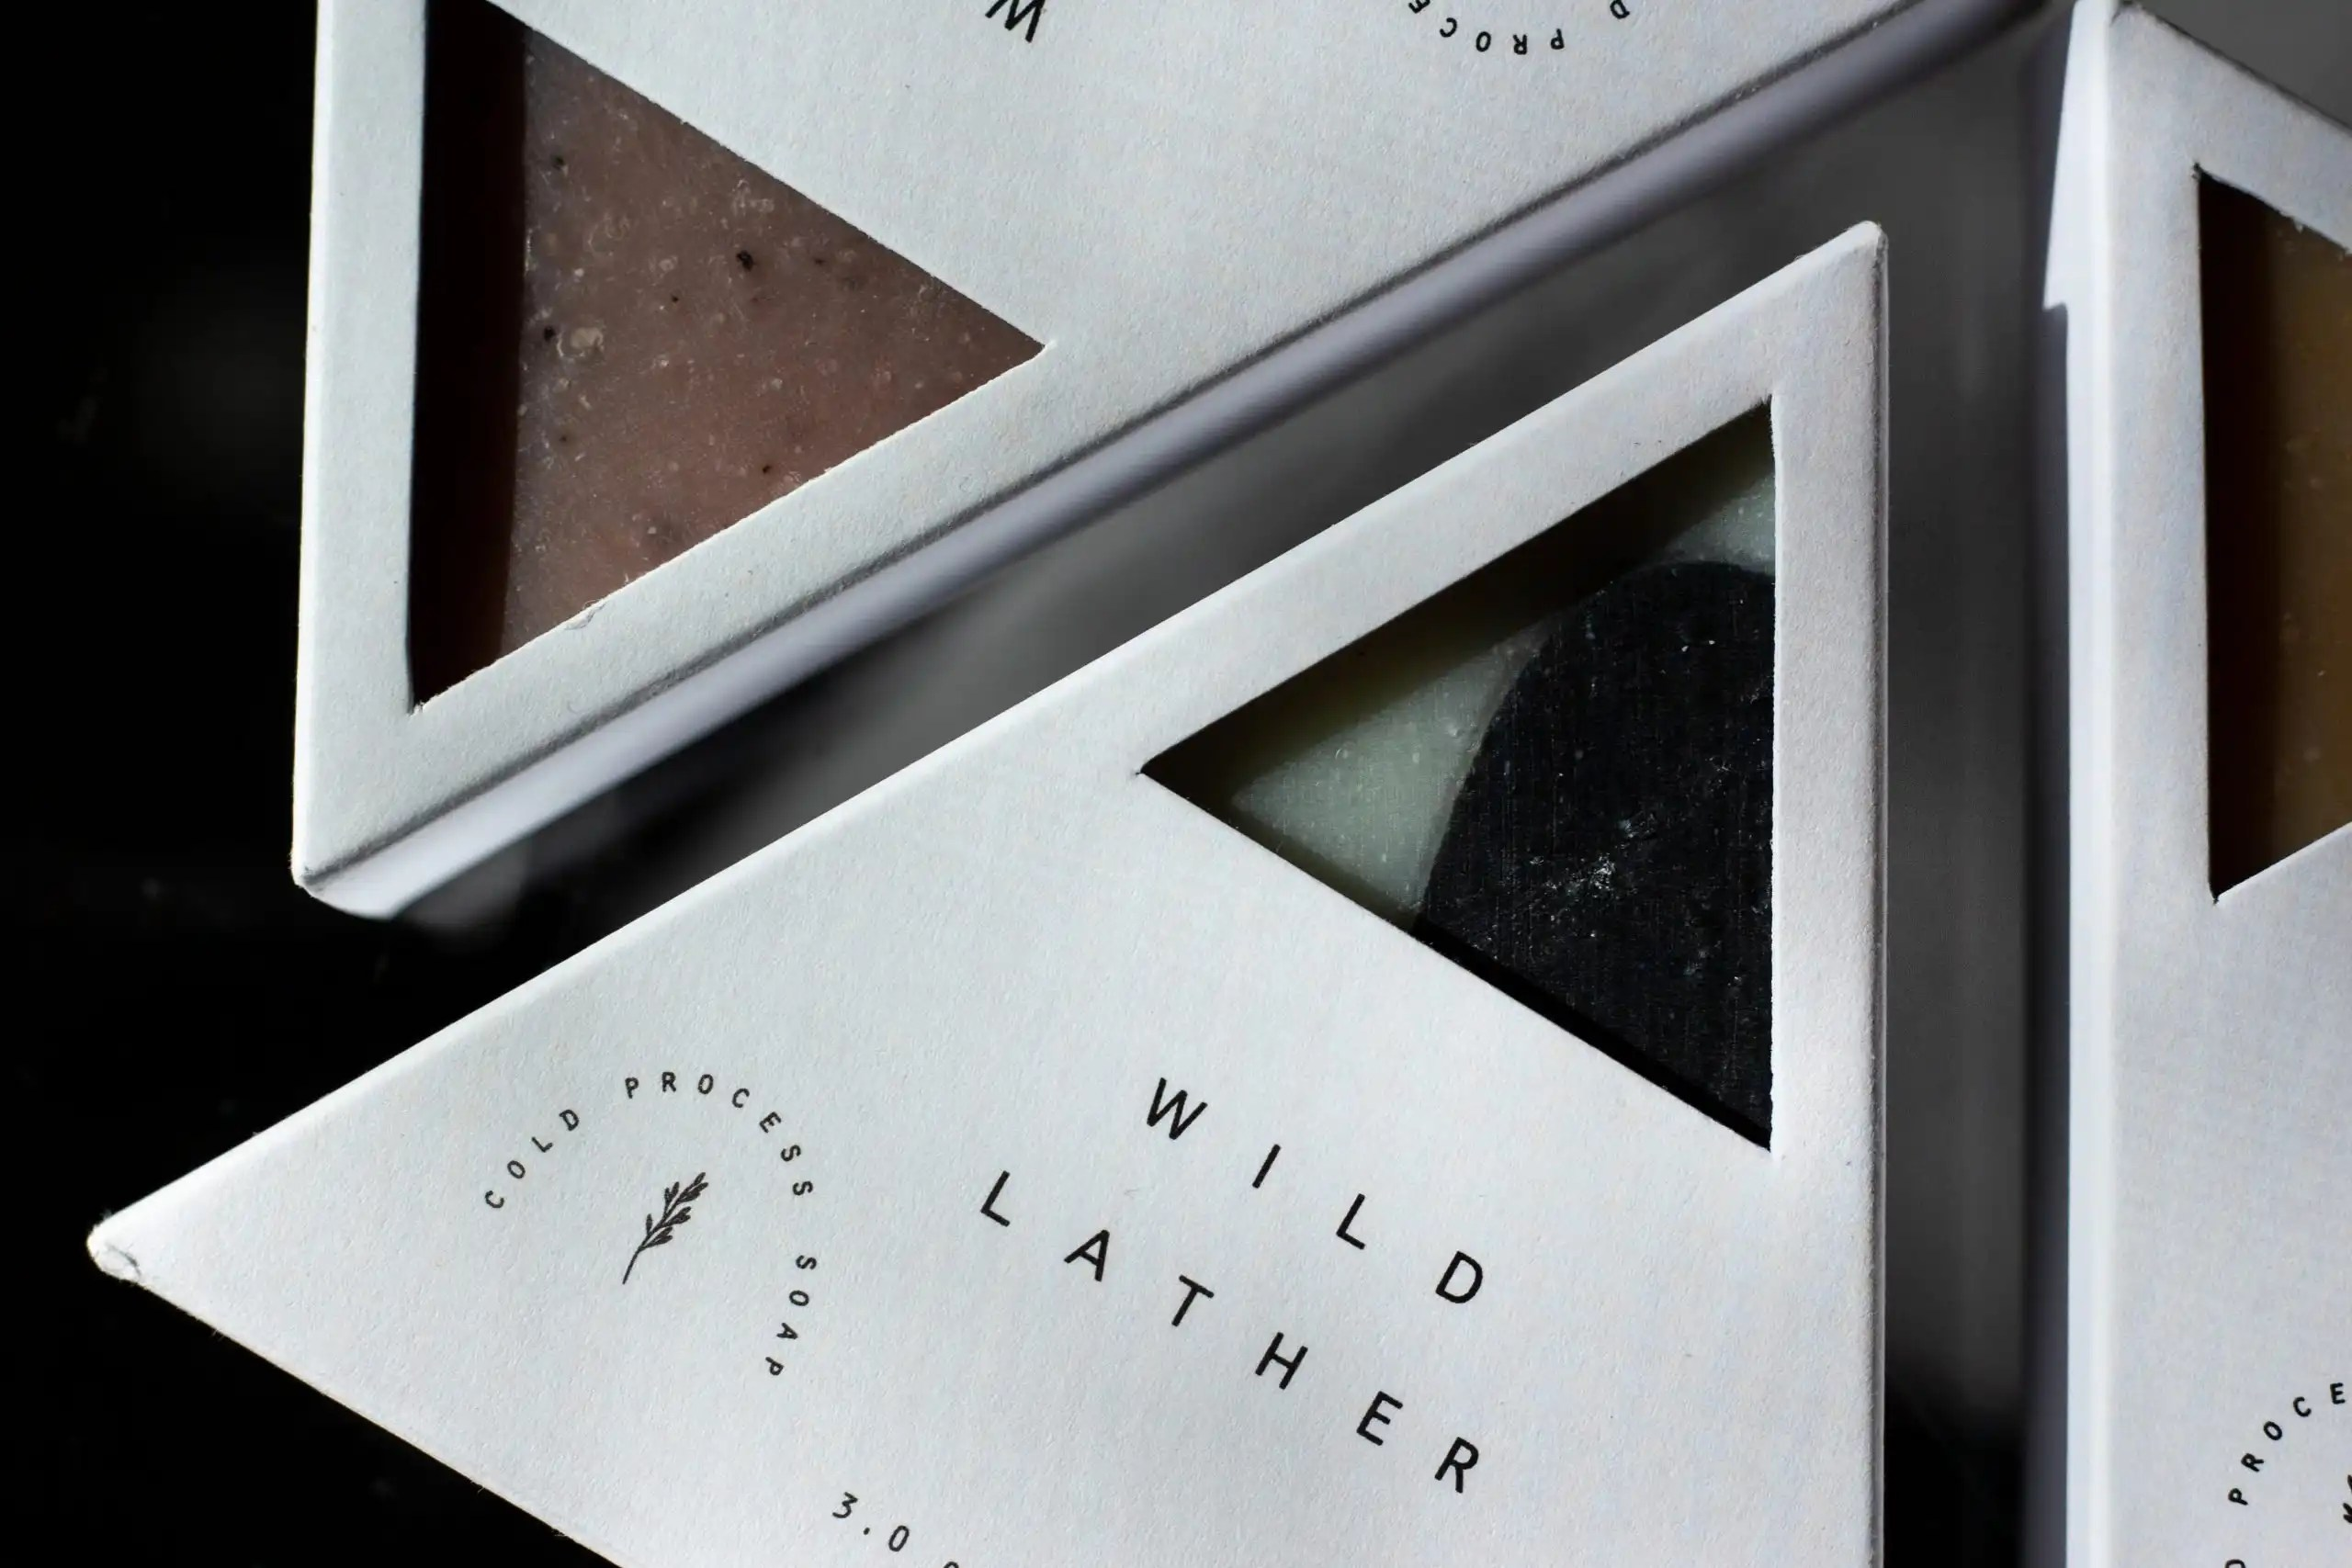 Wild Lather triangular soap in white packaging on black background